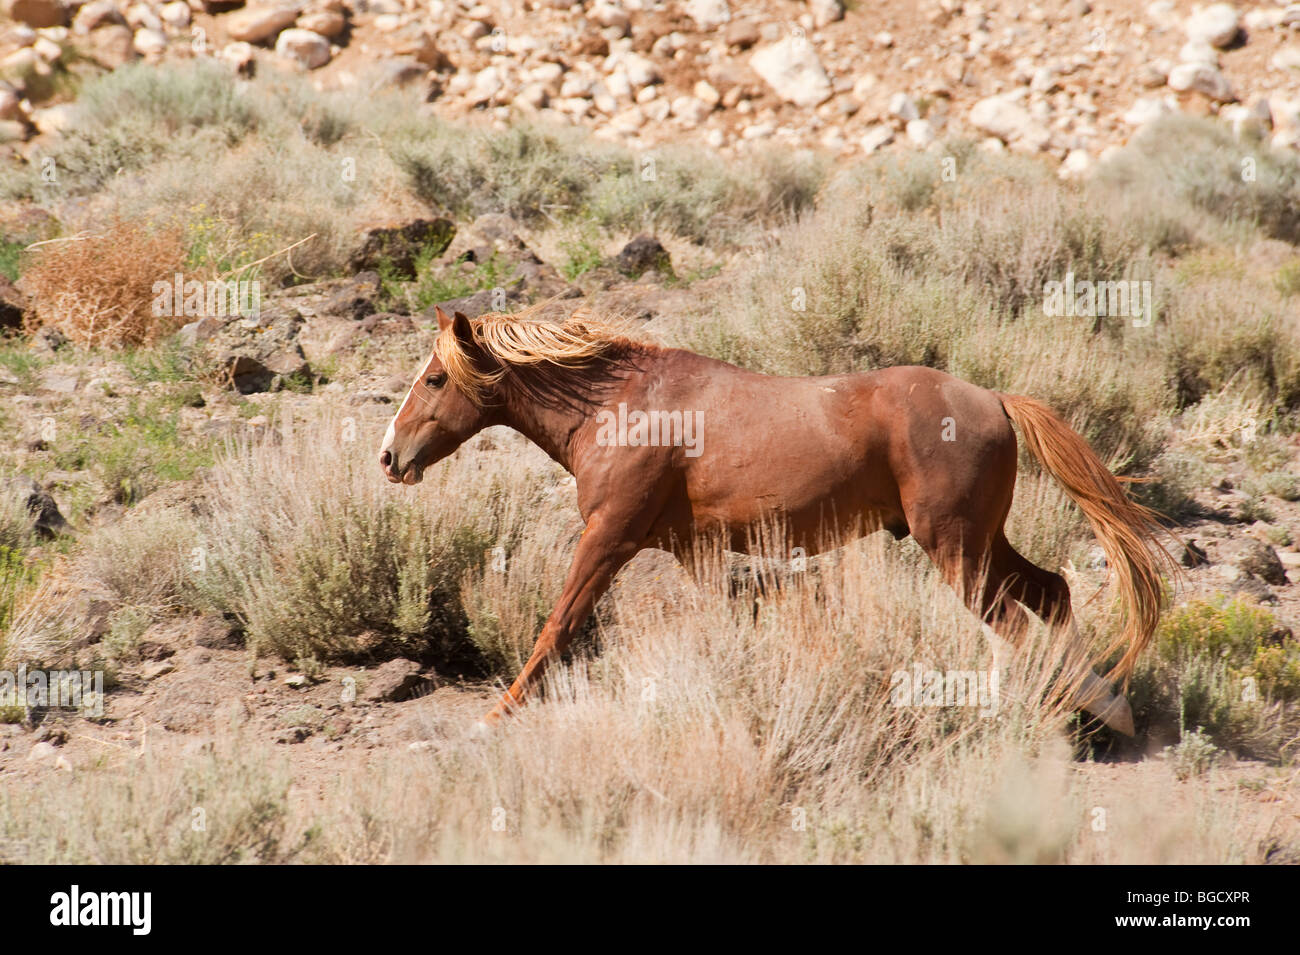 Mustang Horse Running Stock Photos Amp Mustang Horse Running